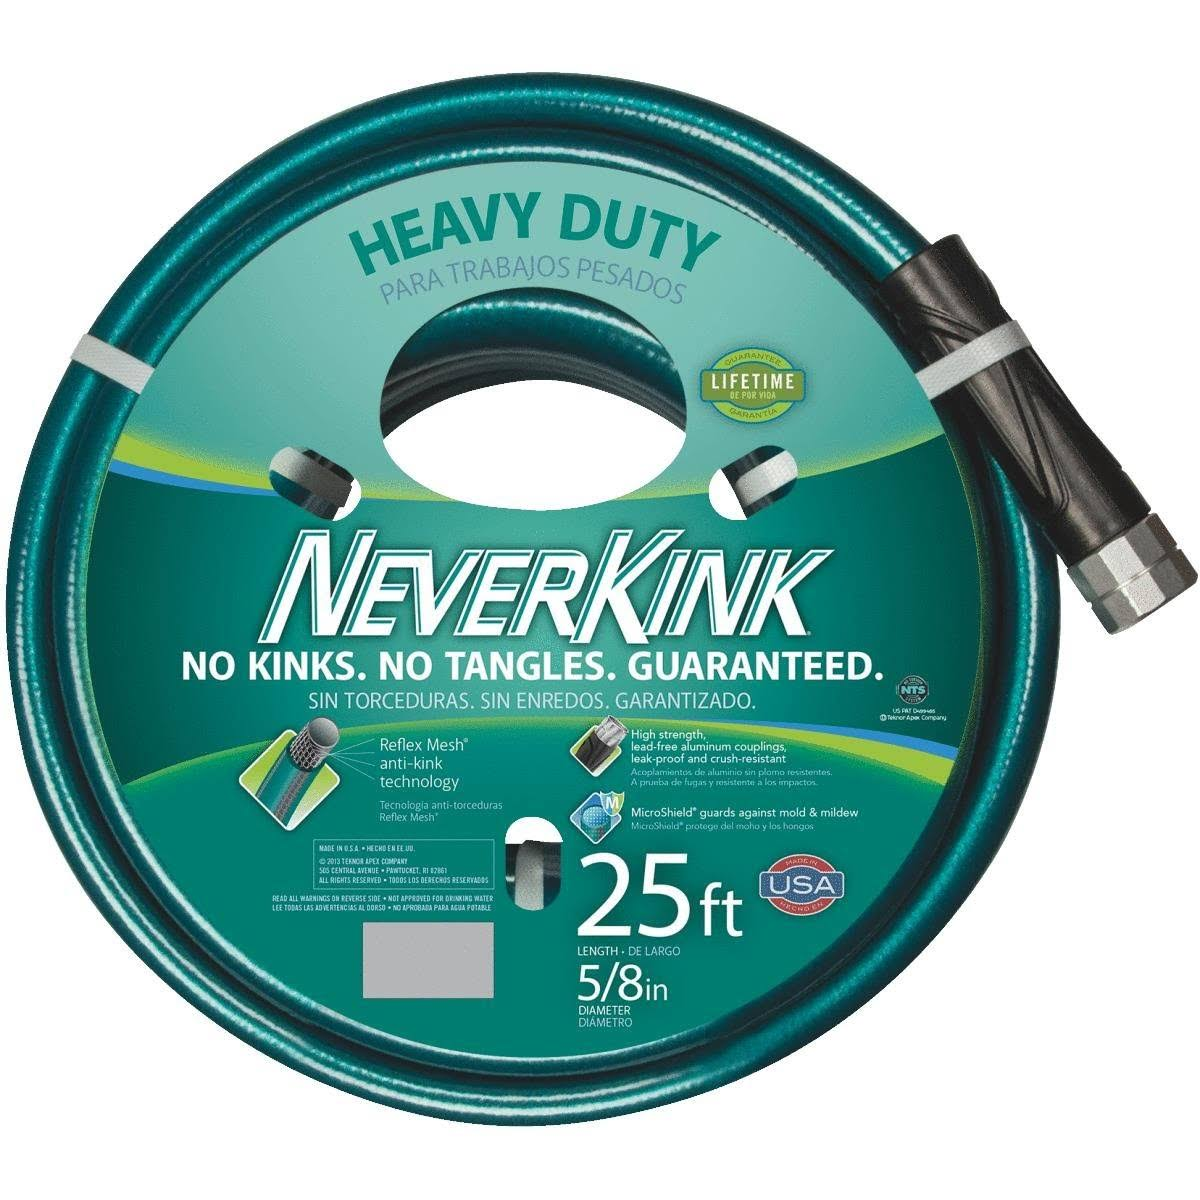 "Teknor Apex Never Kink Series 2000 Ultra Flexible Garden Hose - 5/8"" x 25'"